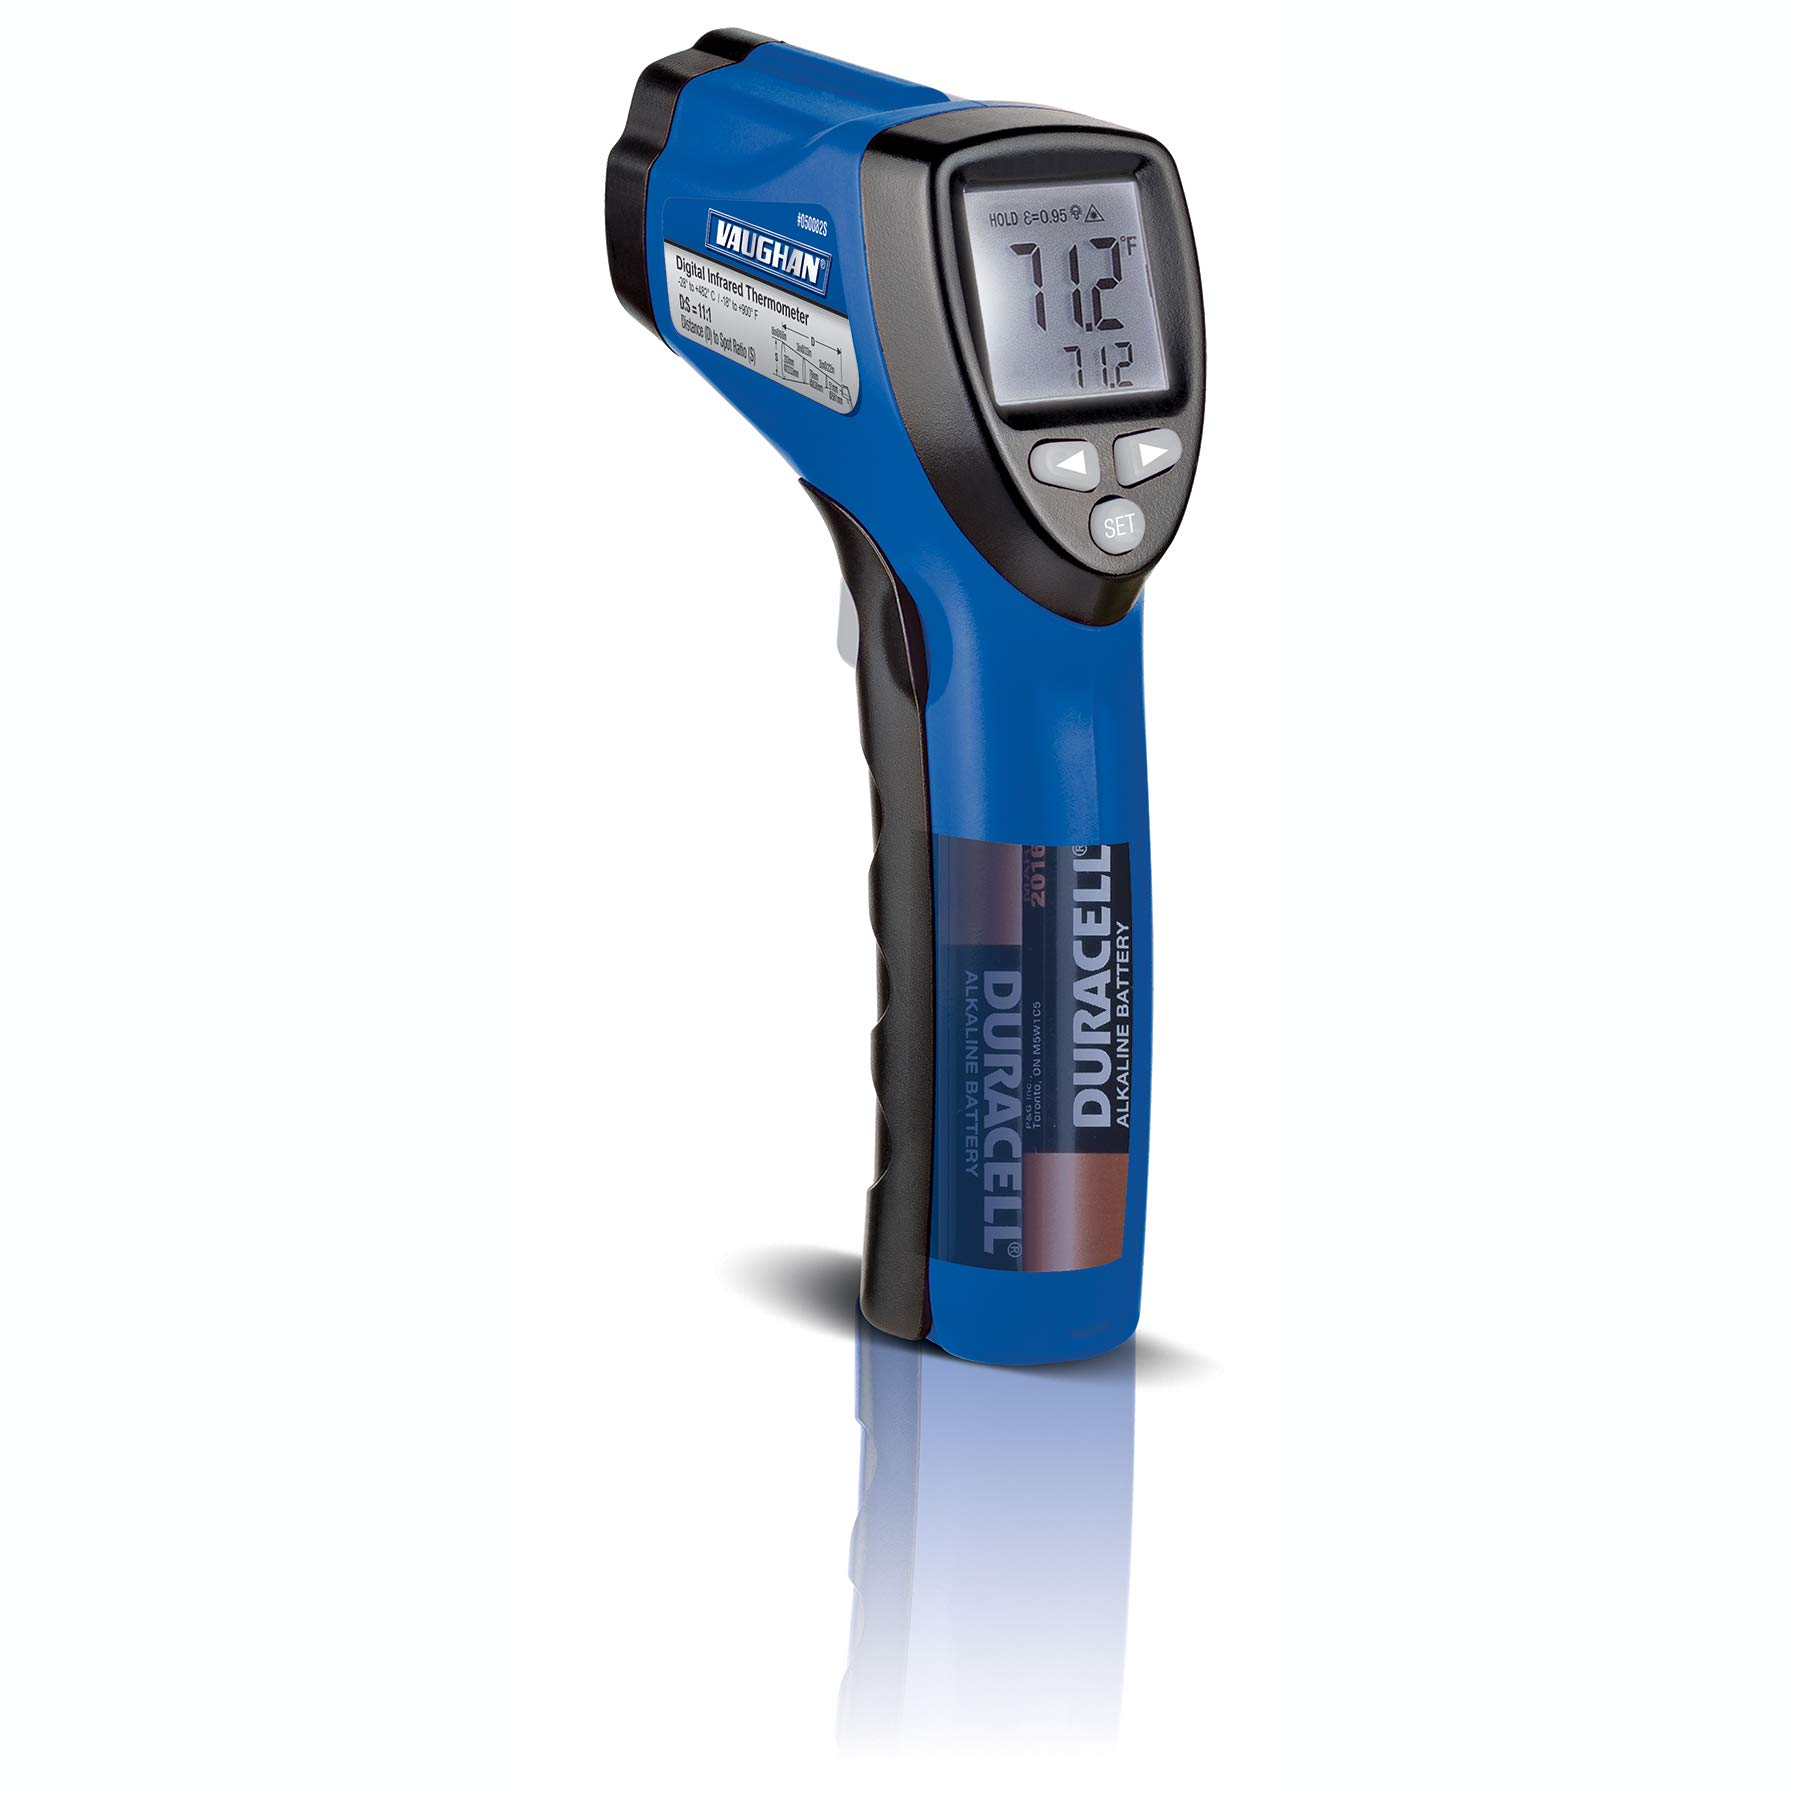 Vaughan 3-Color Infrared Circular Laser Thermometer Color-Coded Display - 240023 by Vaughan (Image #1)